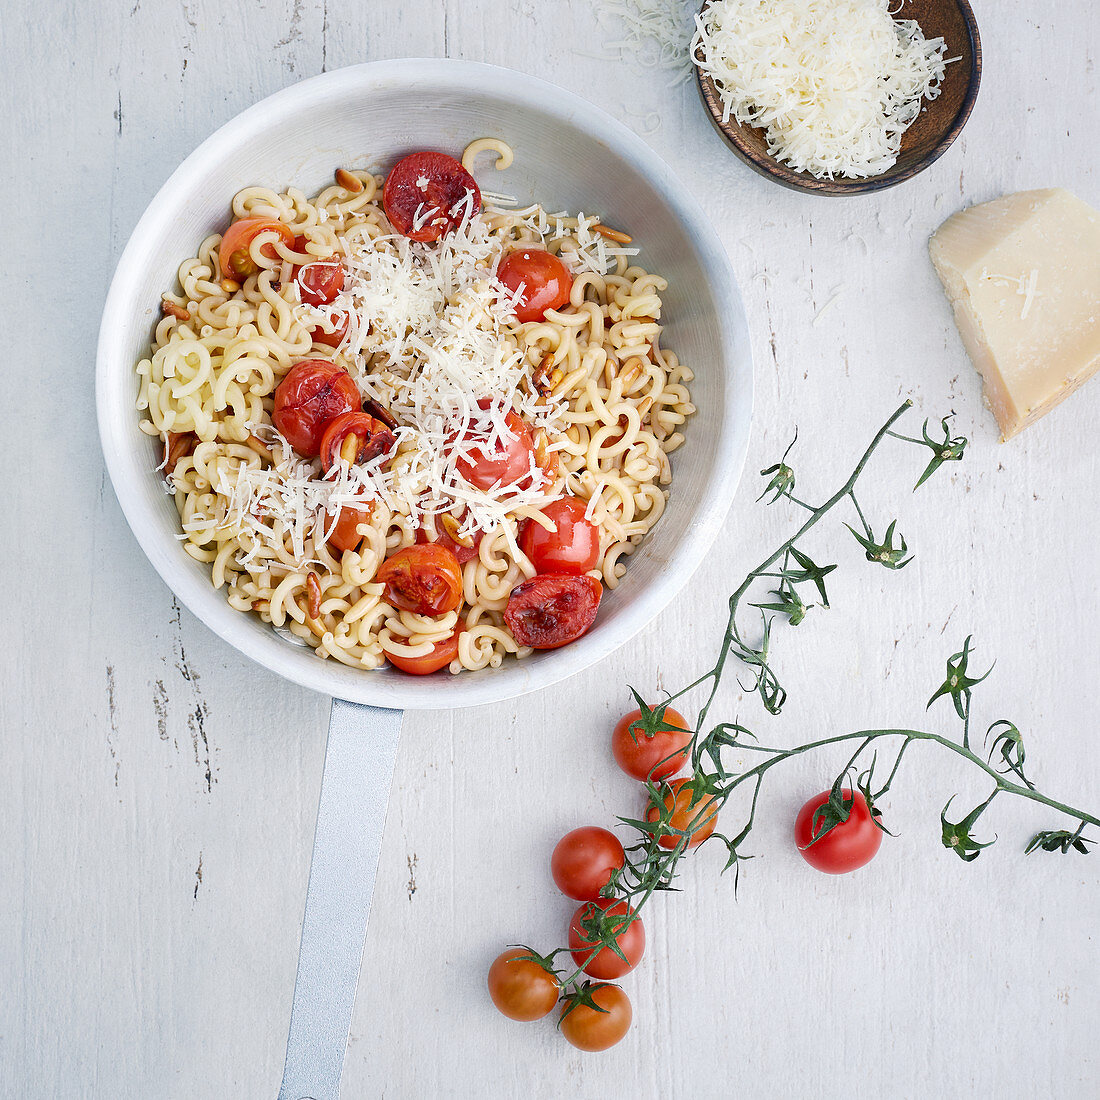 Pan-fried fork spaghetti with cherry tomatoes and vinegar